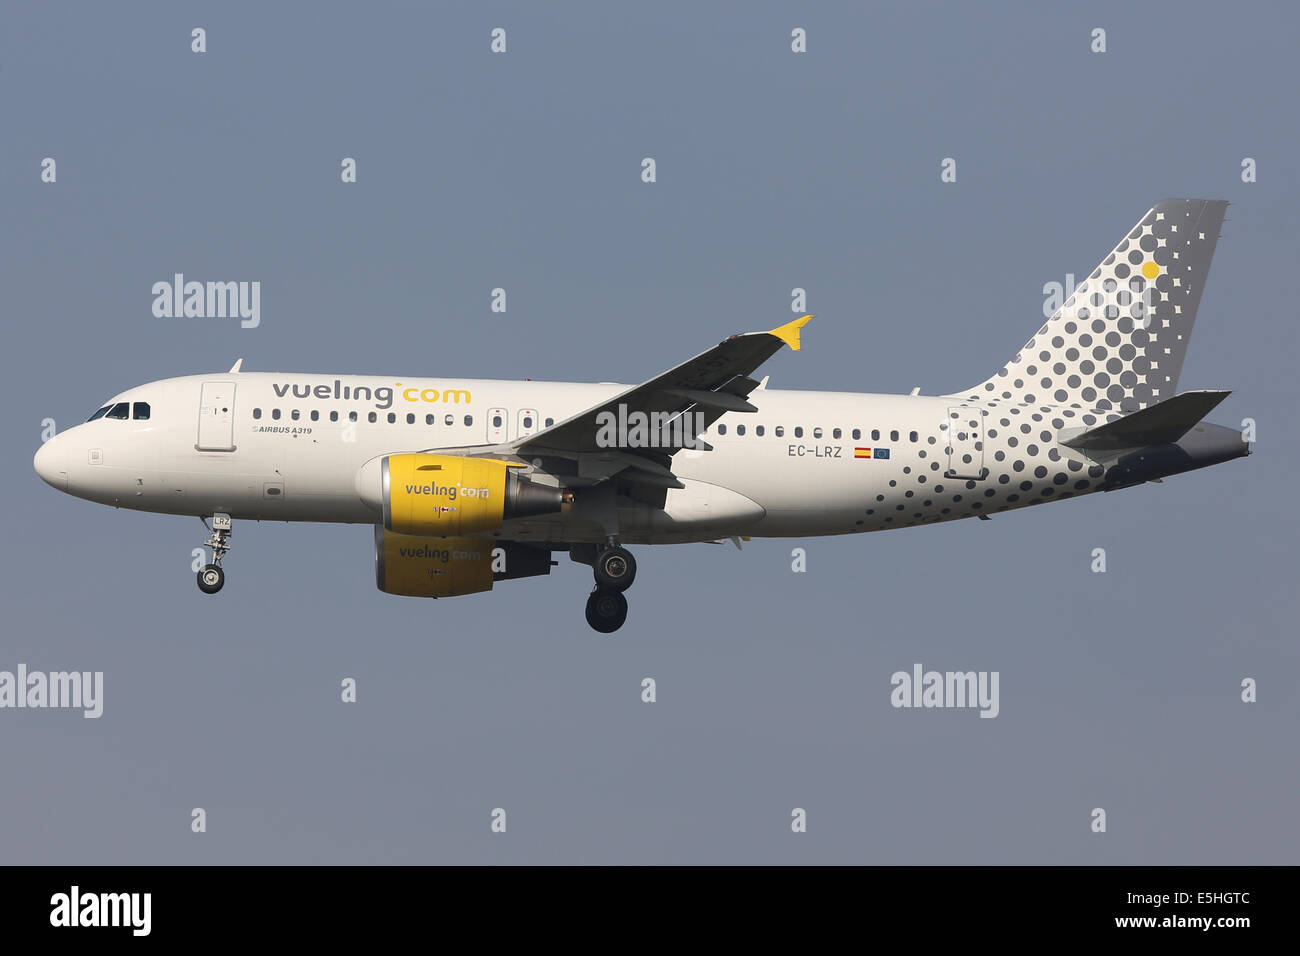 Vueling Airlines Airbus A319 arrives at London Heathrow from Barcelona, Spain - Stock Image